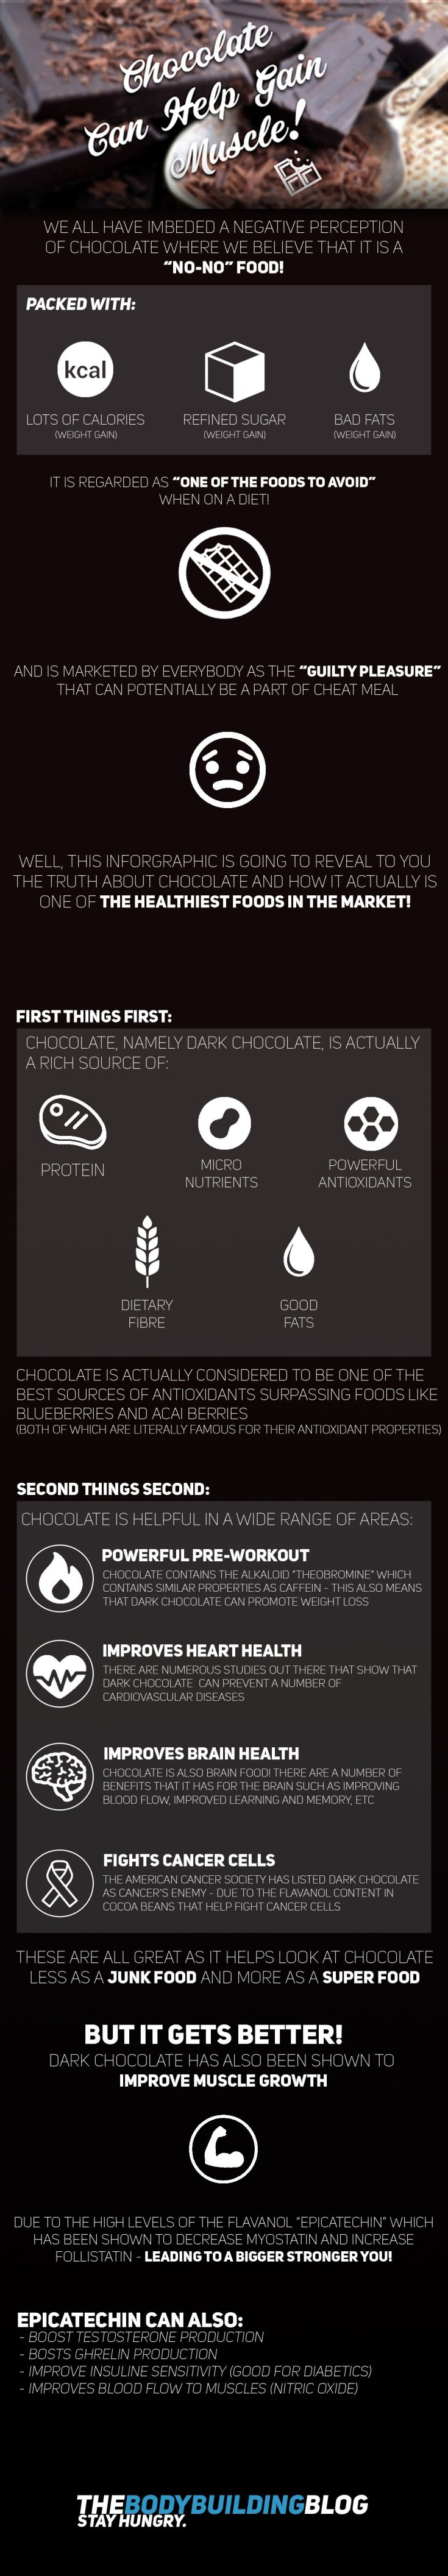 chocolate can help build muscle infographic